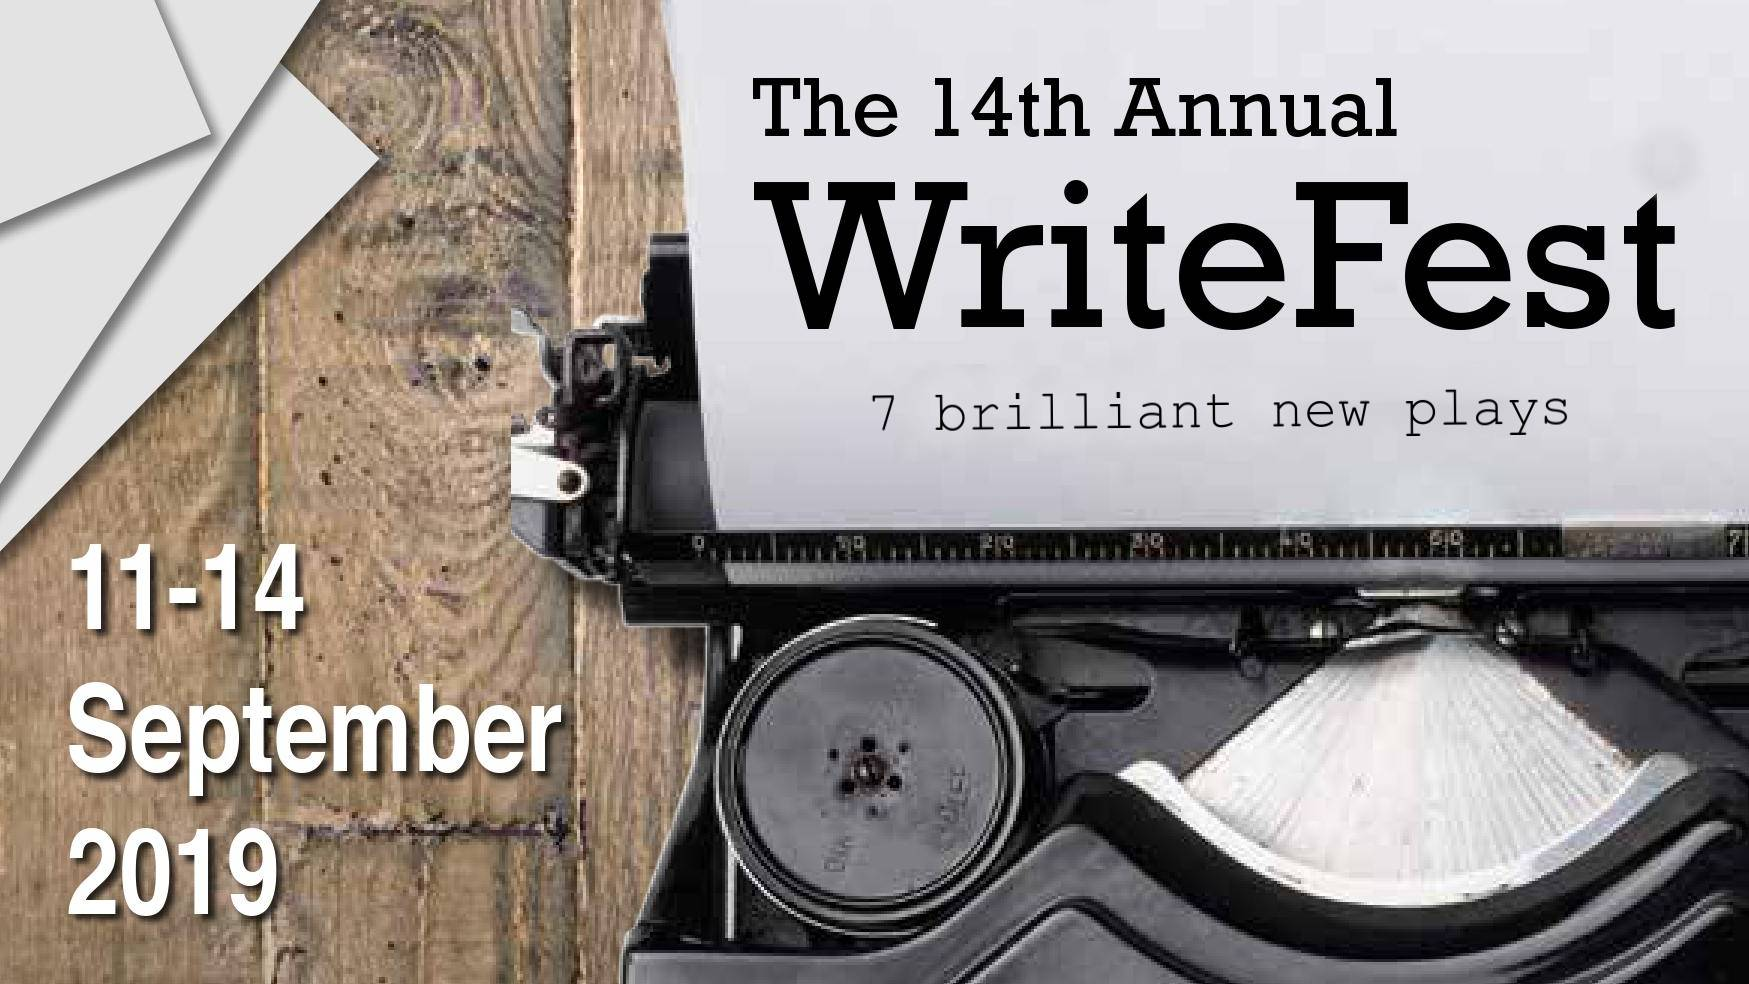 14th Annual WriteFest banner image